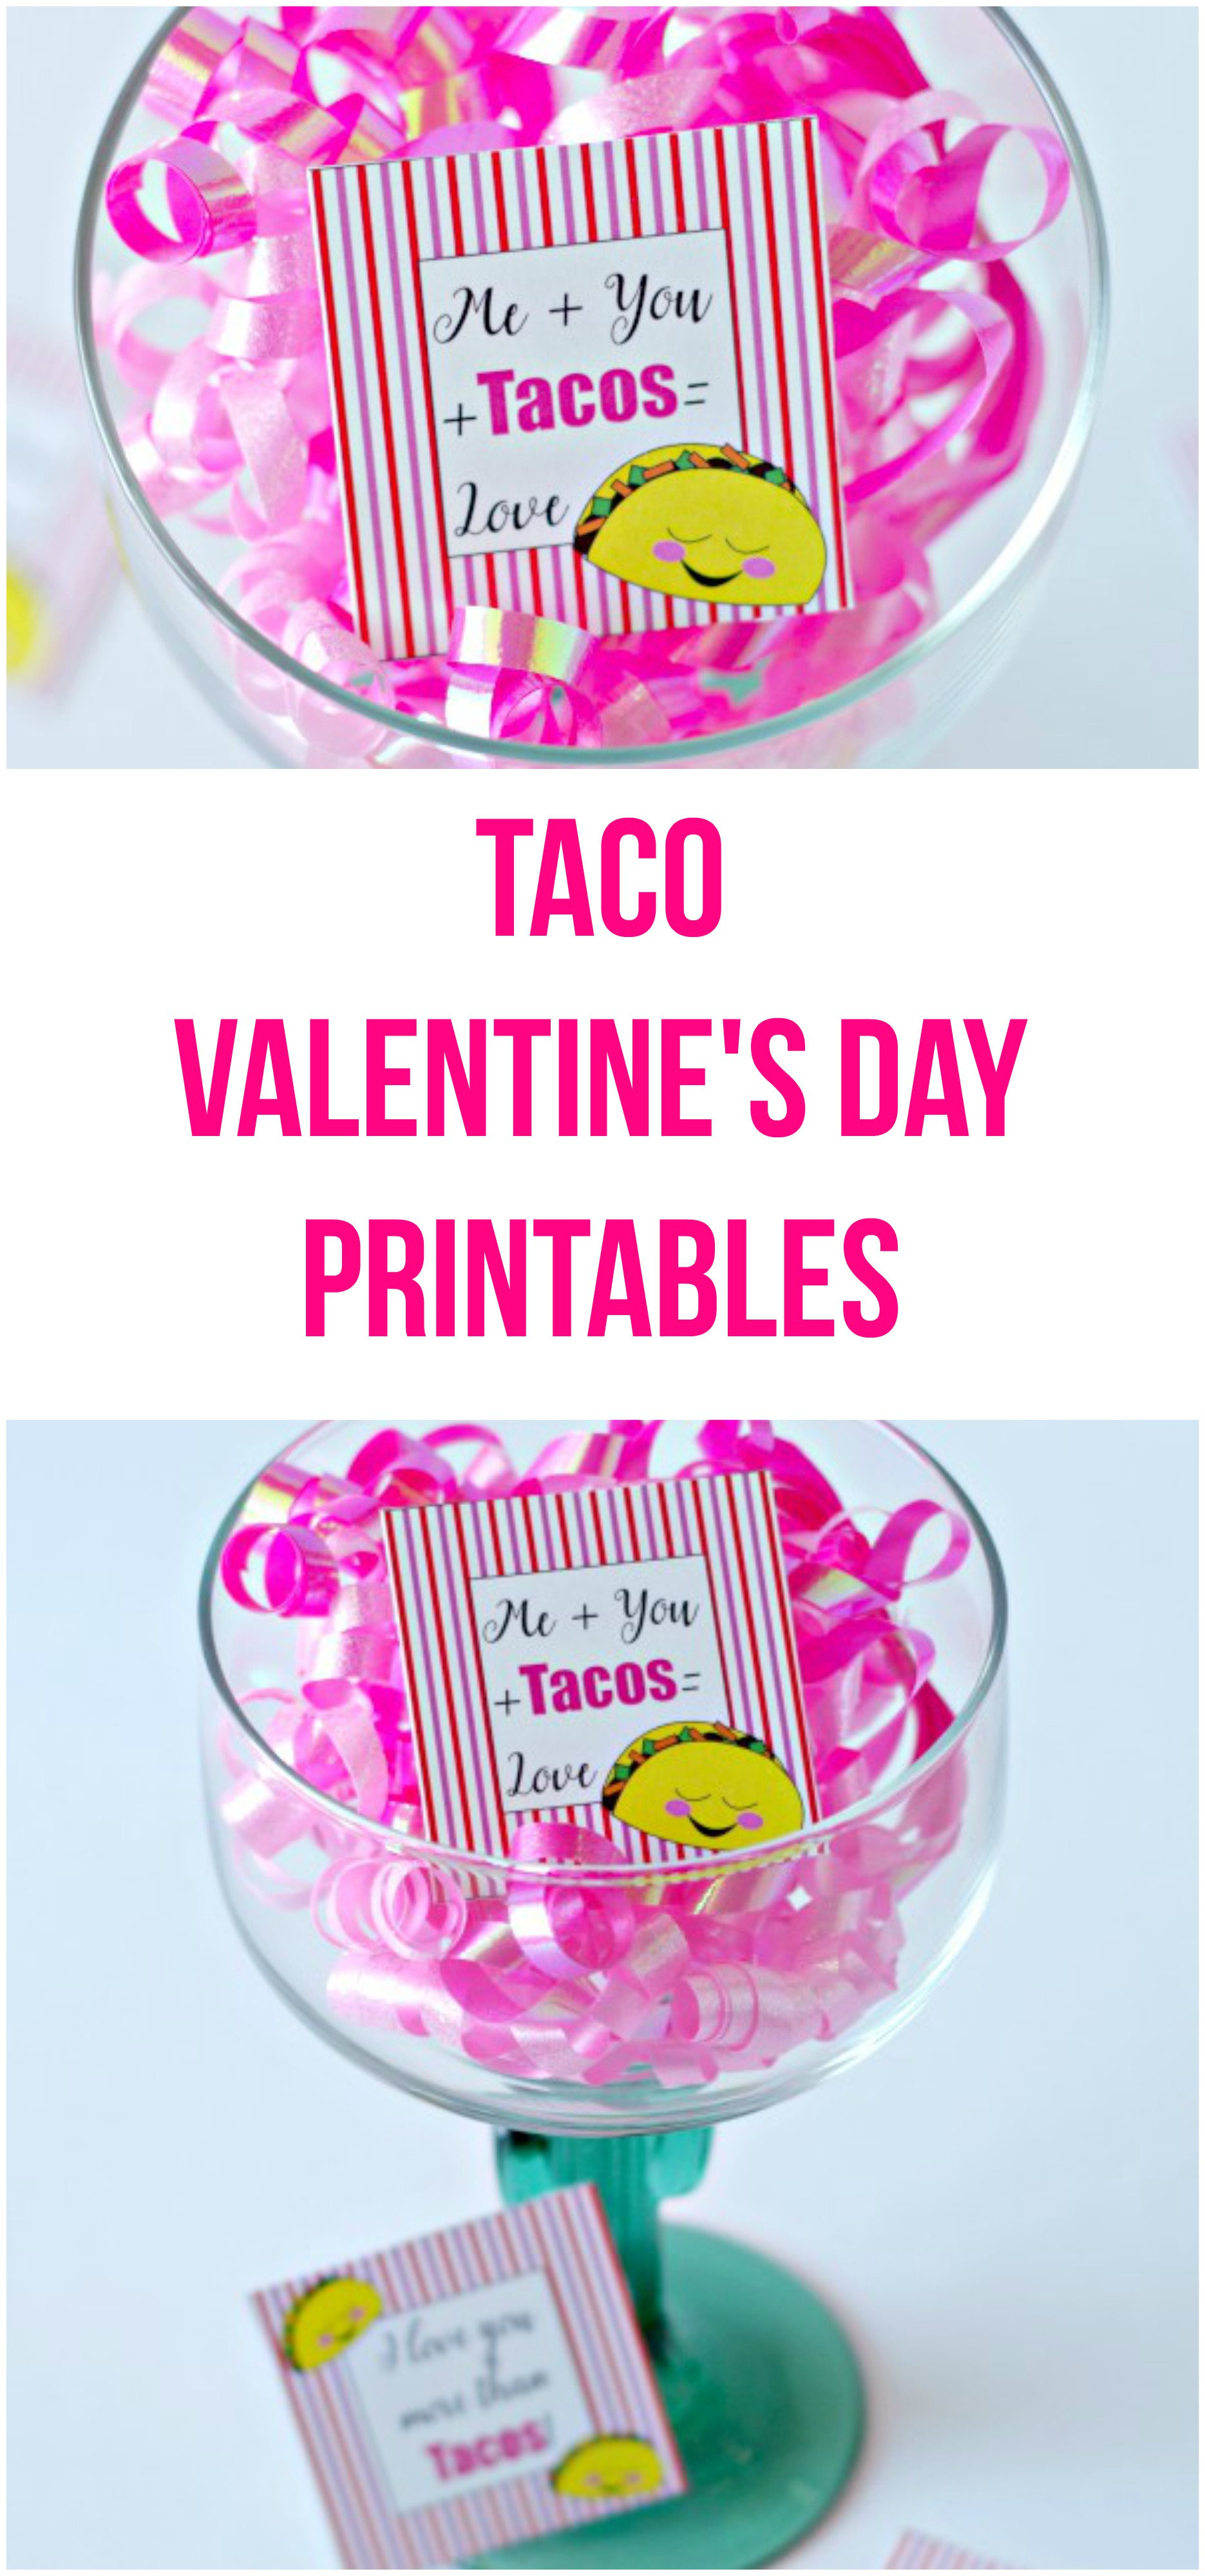 Taco Valentine S Day Printables Val Event Gal